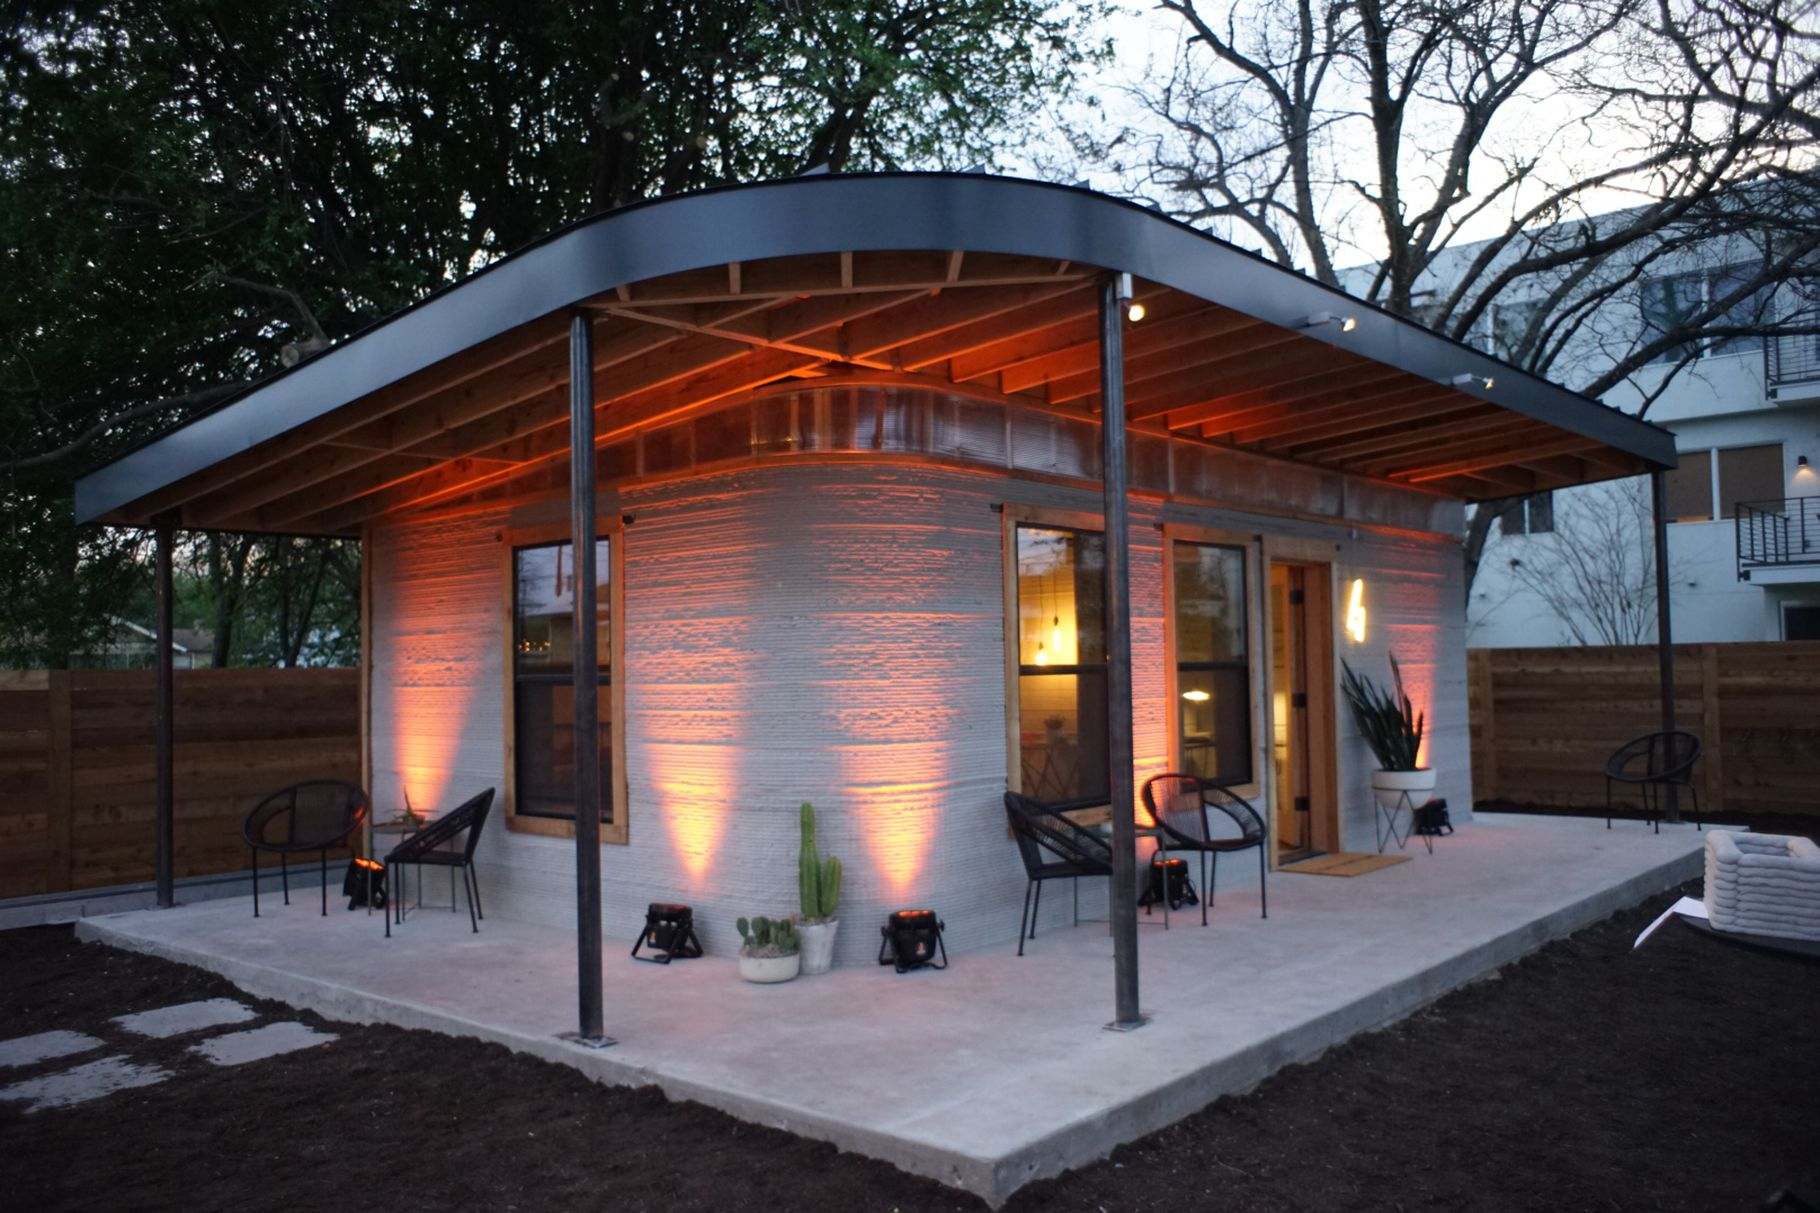 startup builds 3D printed house within a day